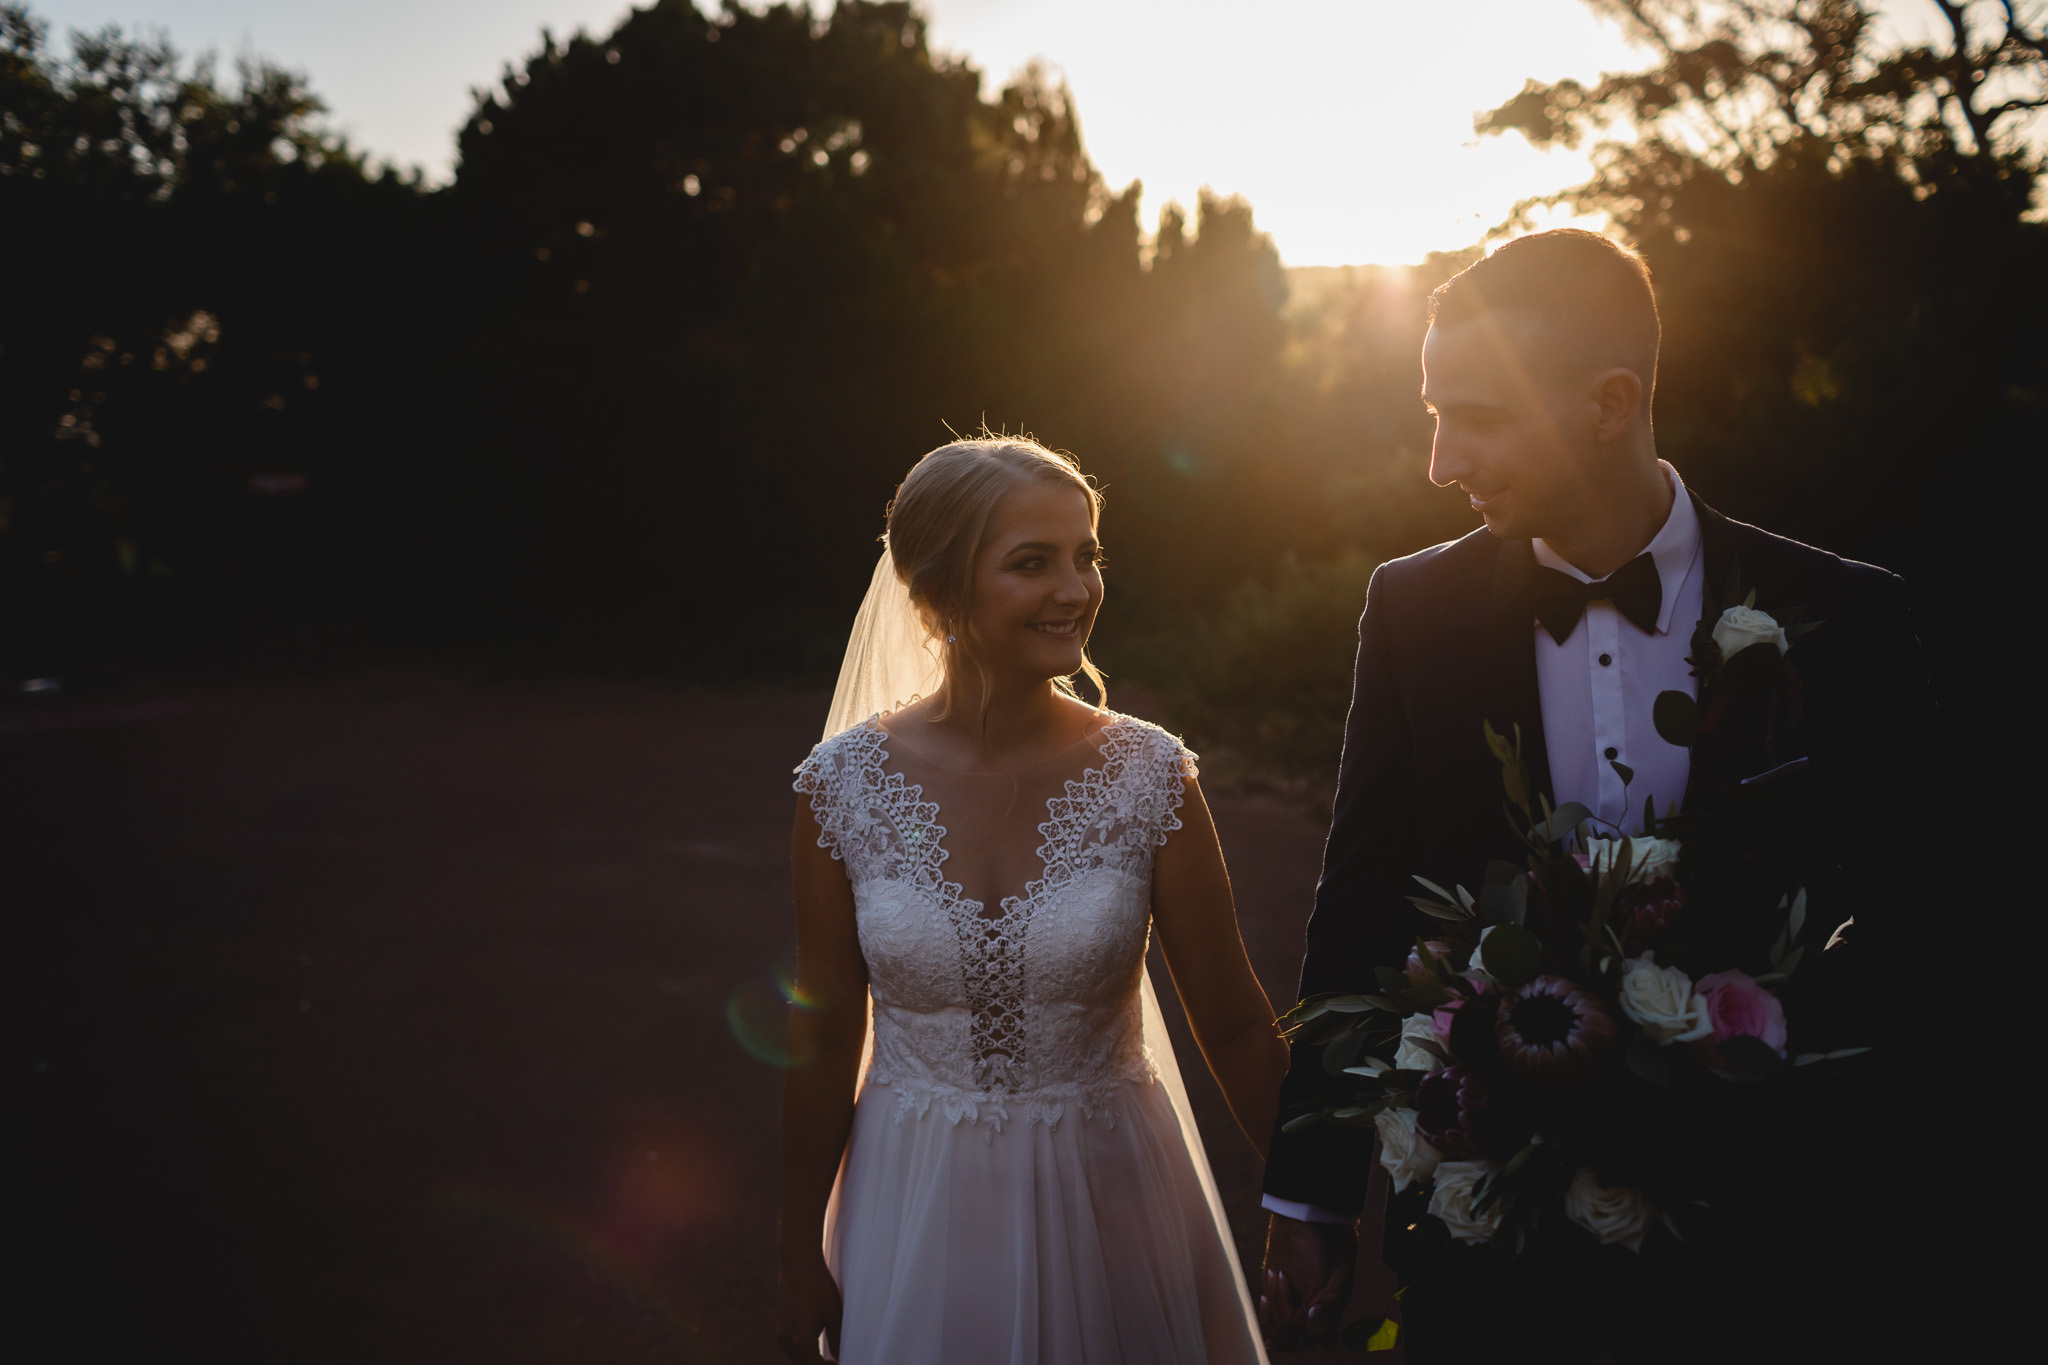 wedding photo of bride and groom walking in front of dark scene while sun flare creates a halo around them at Pearl River Houses in Margaret River